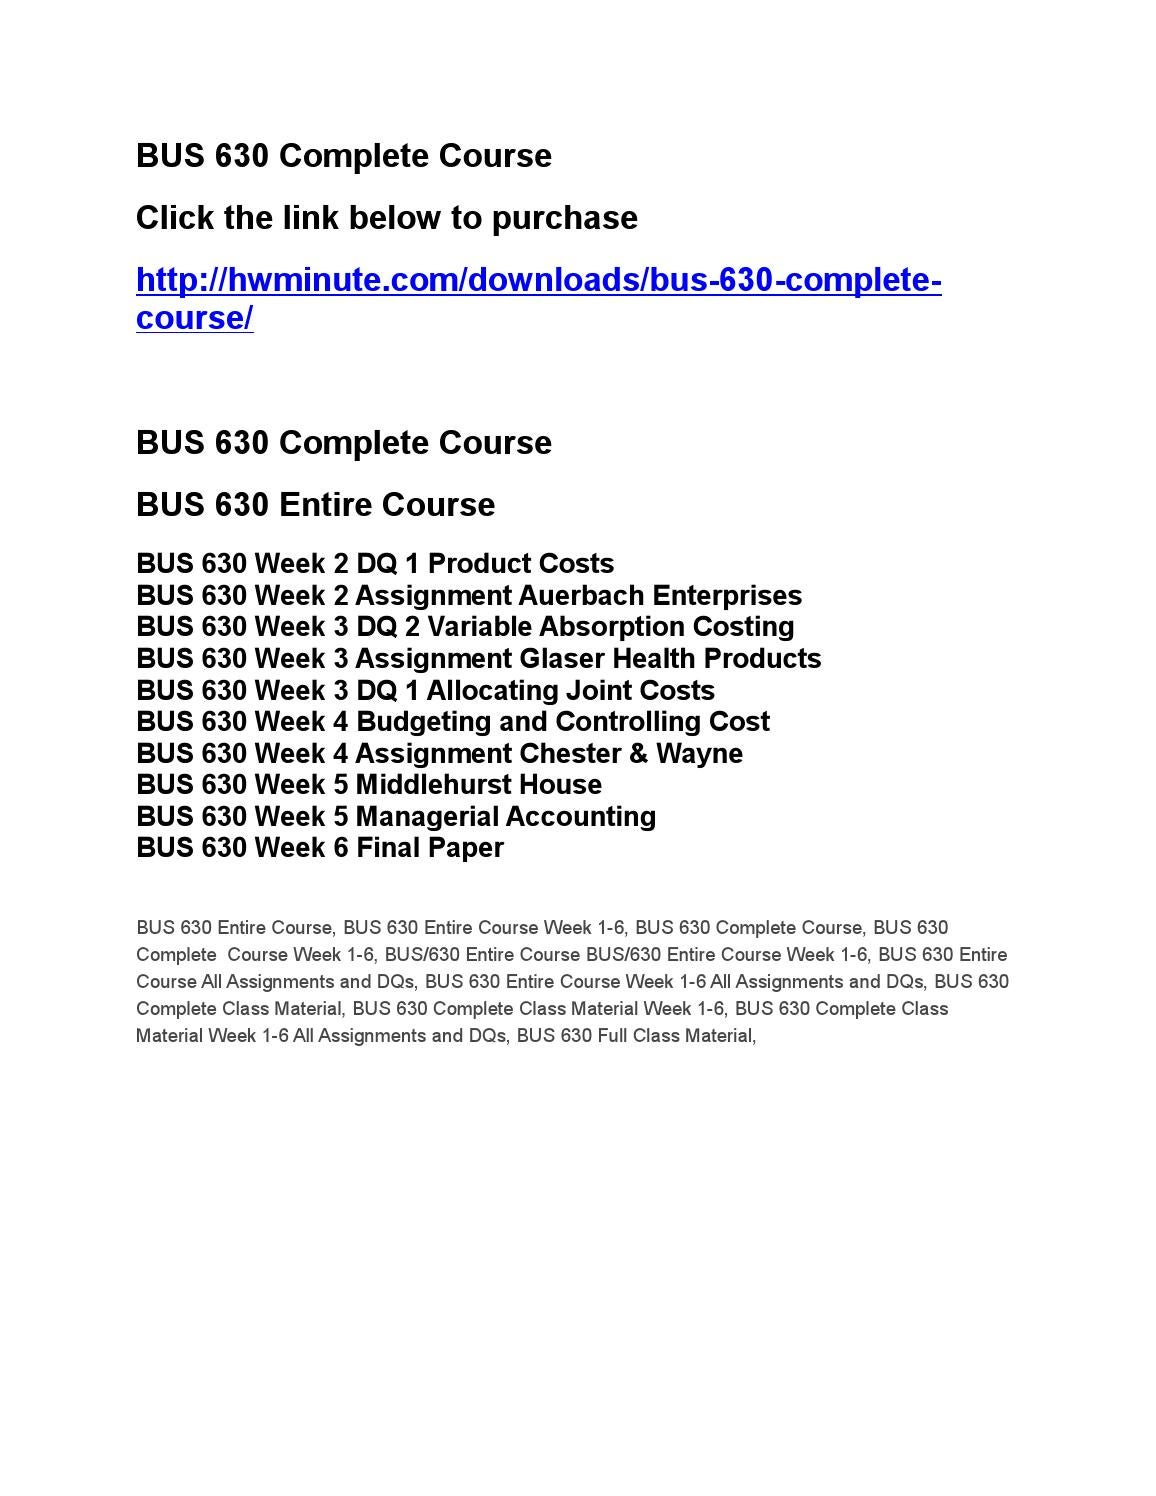 BUS 630 NEW Course Tutorial / uophelp